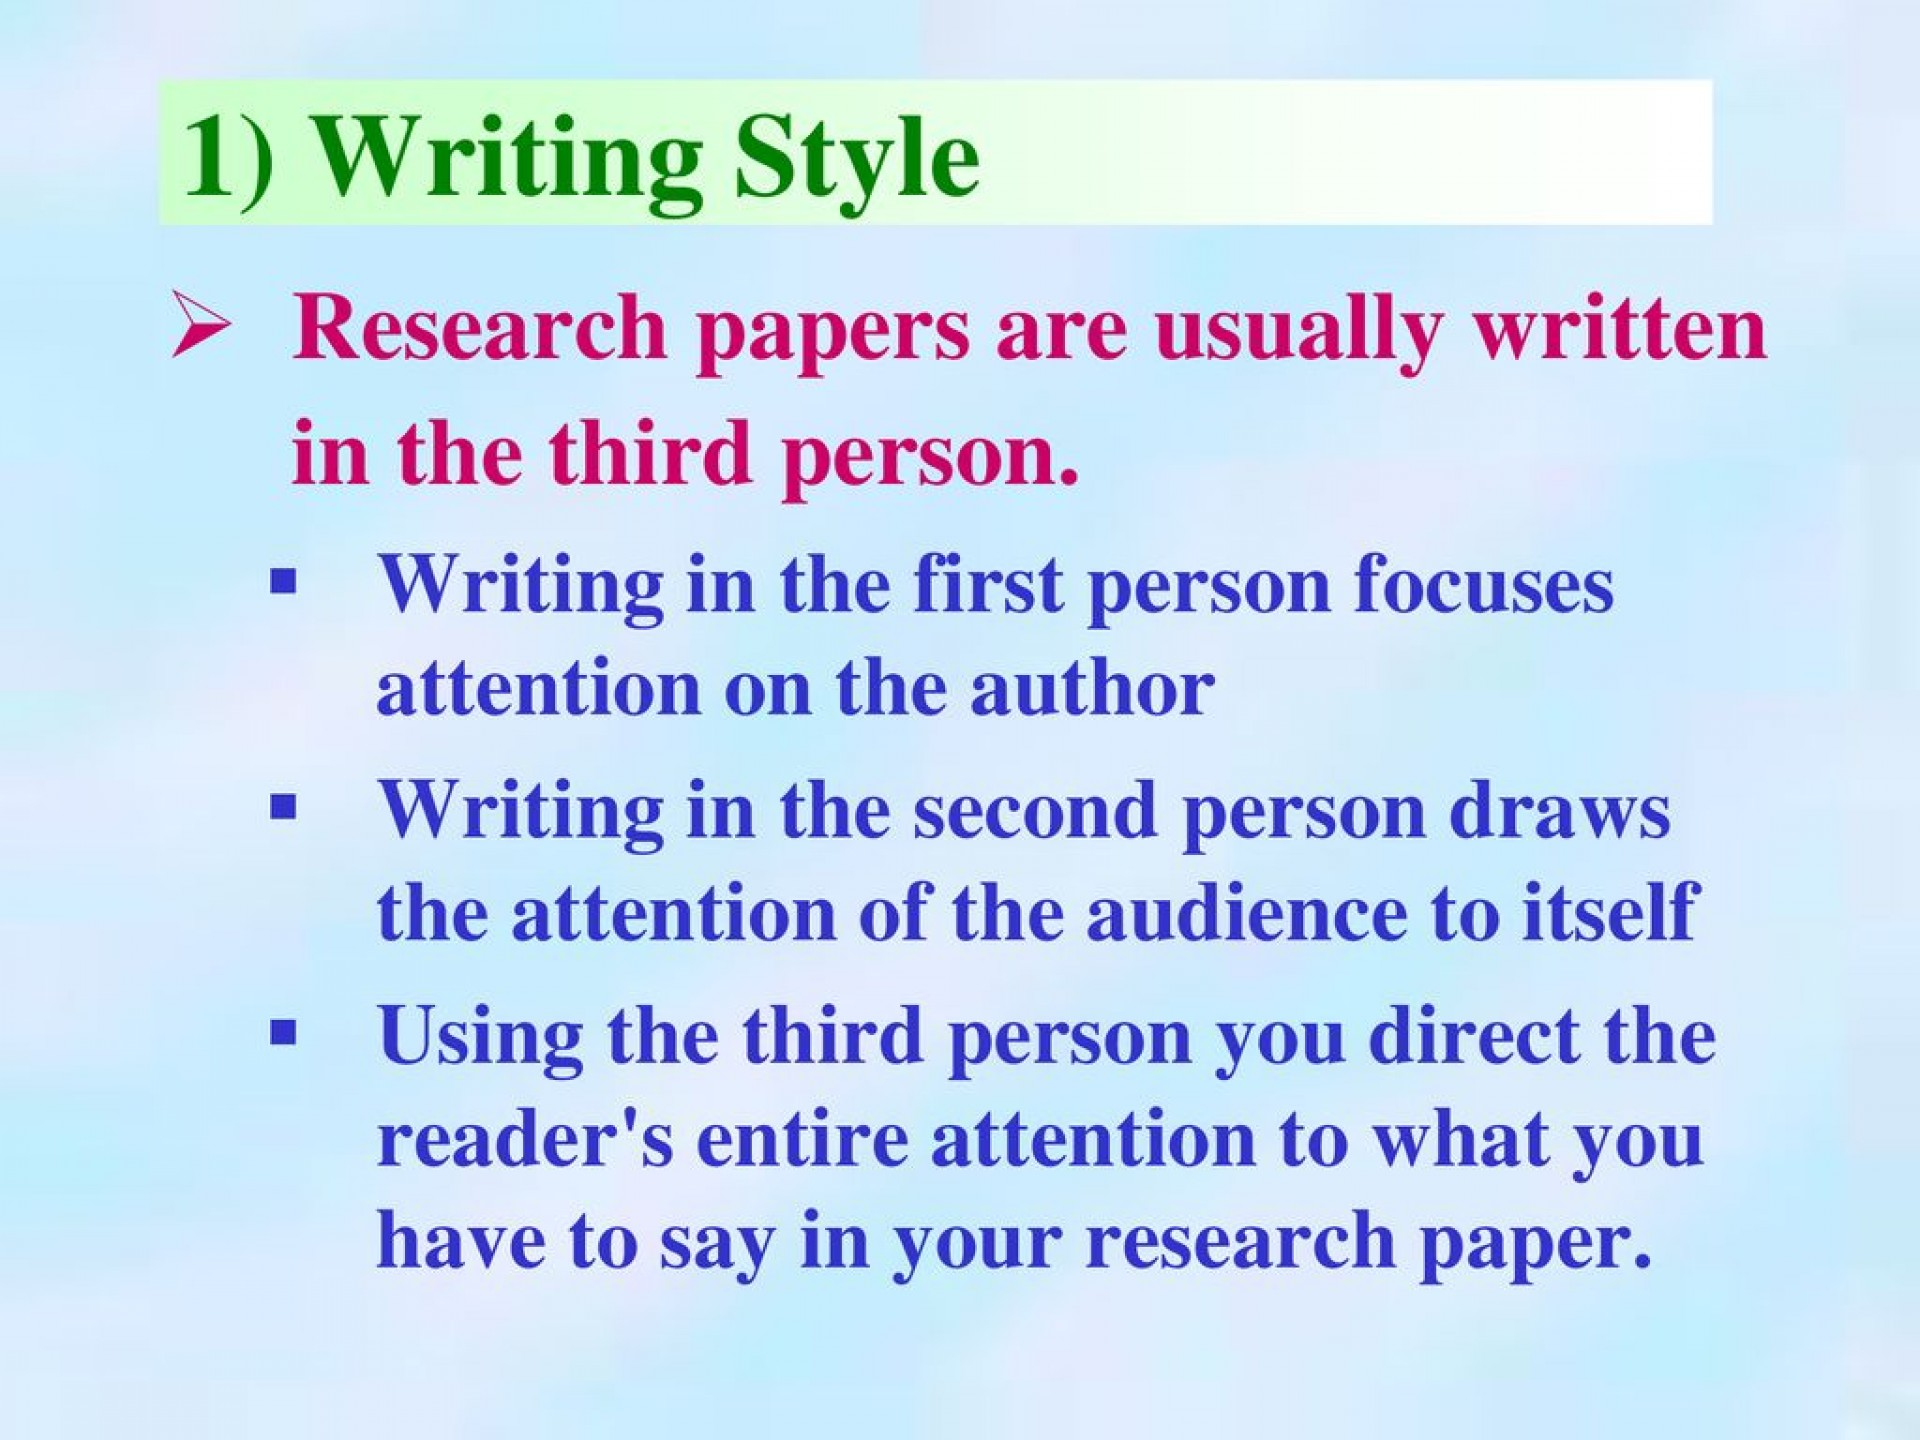 018 Research Paper Are Papers Written In First Person 129writingstyleresearchpapersareusuallywritteninthethirdperson Impressive Proposals 1920